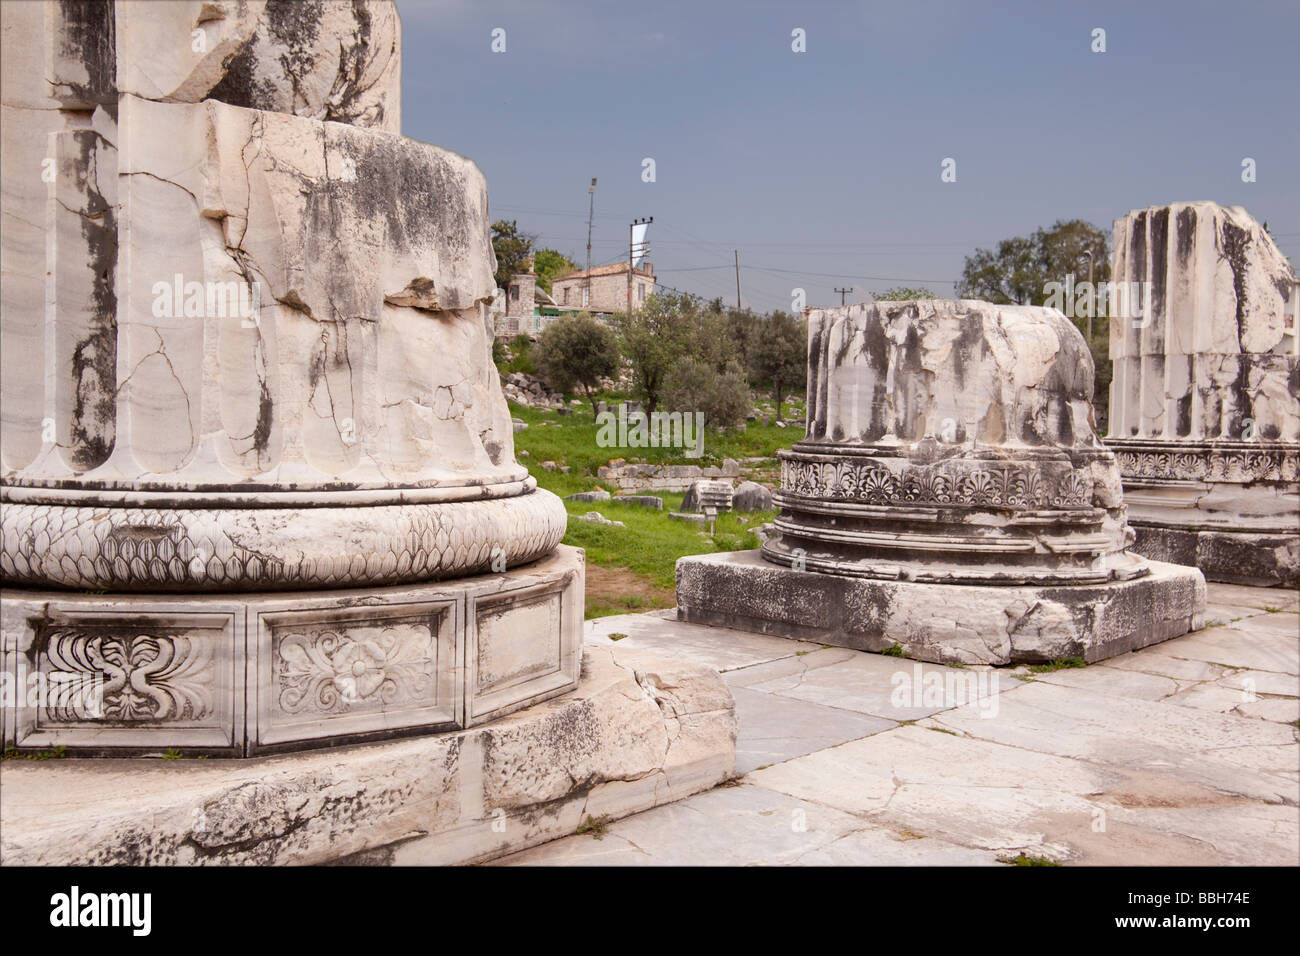 Ancient columns at the ruins of Didyma at the Temple of Apollo in Turkey - Stock Image